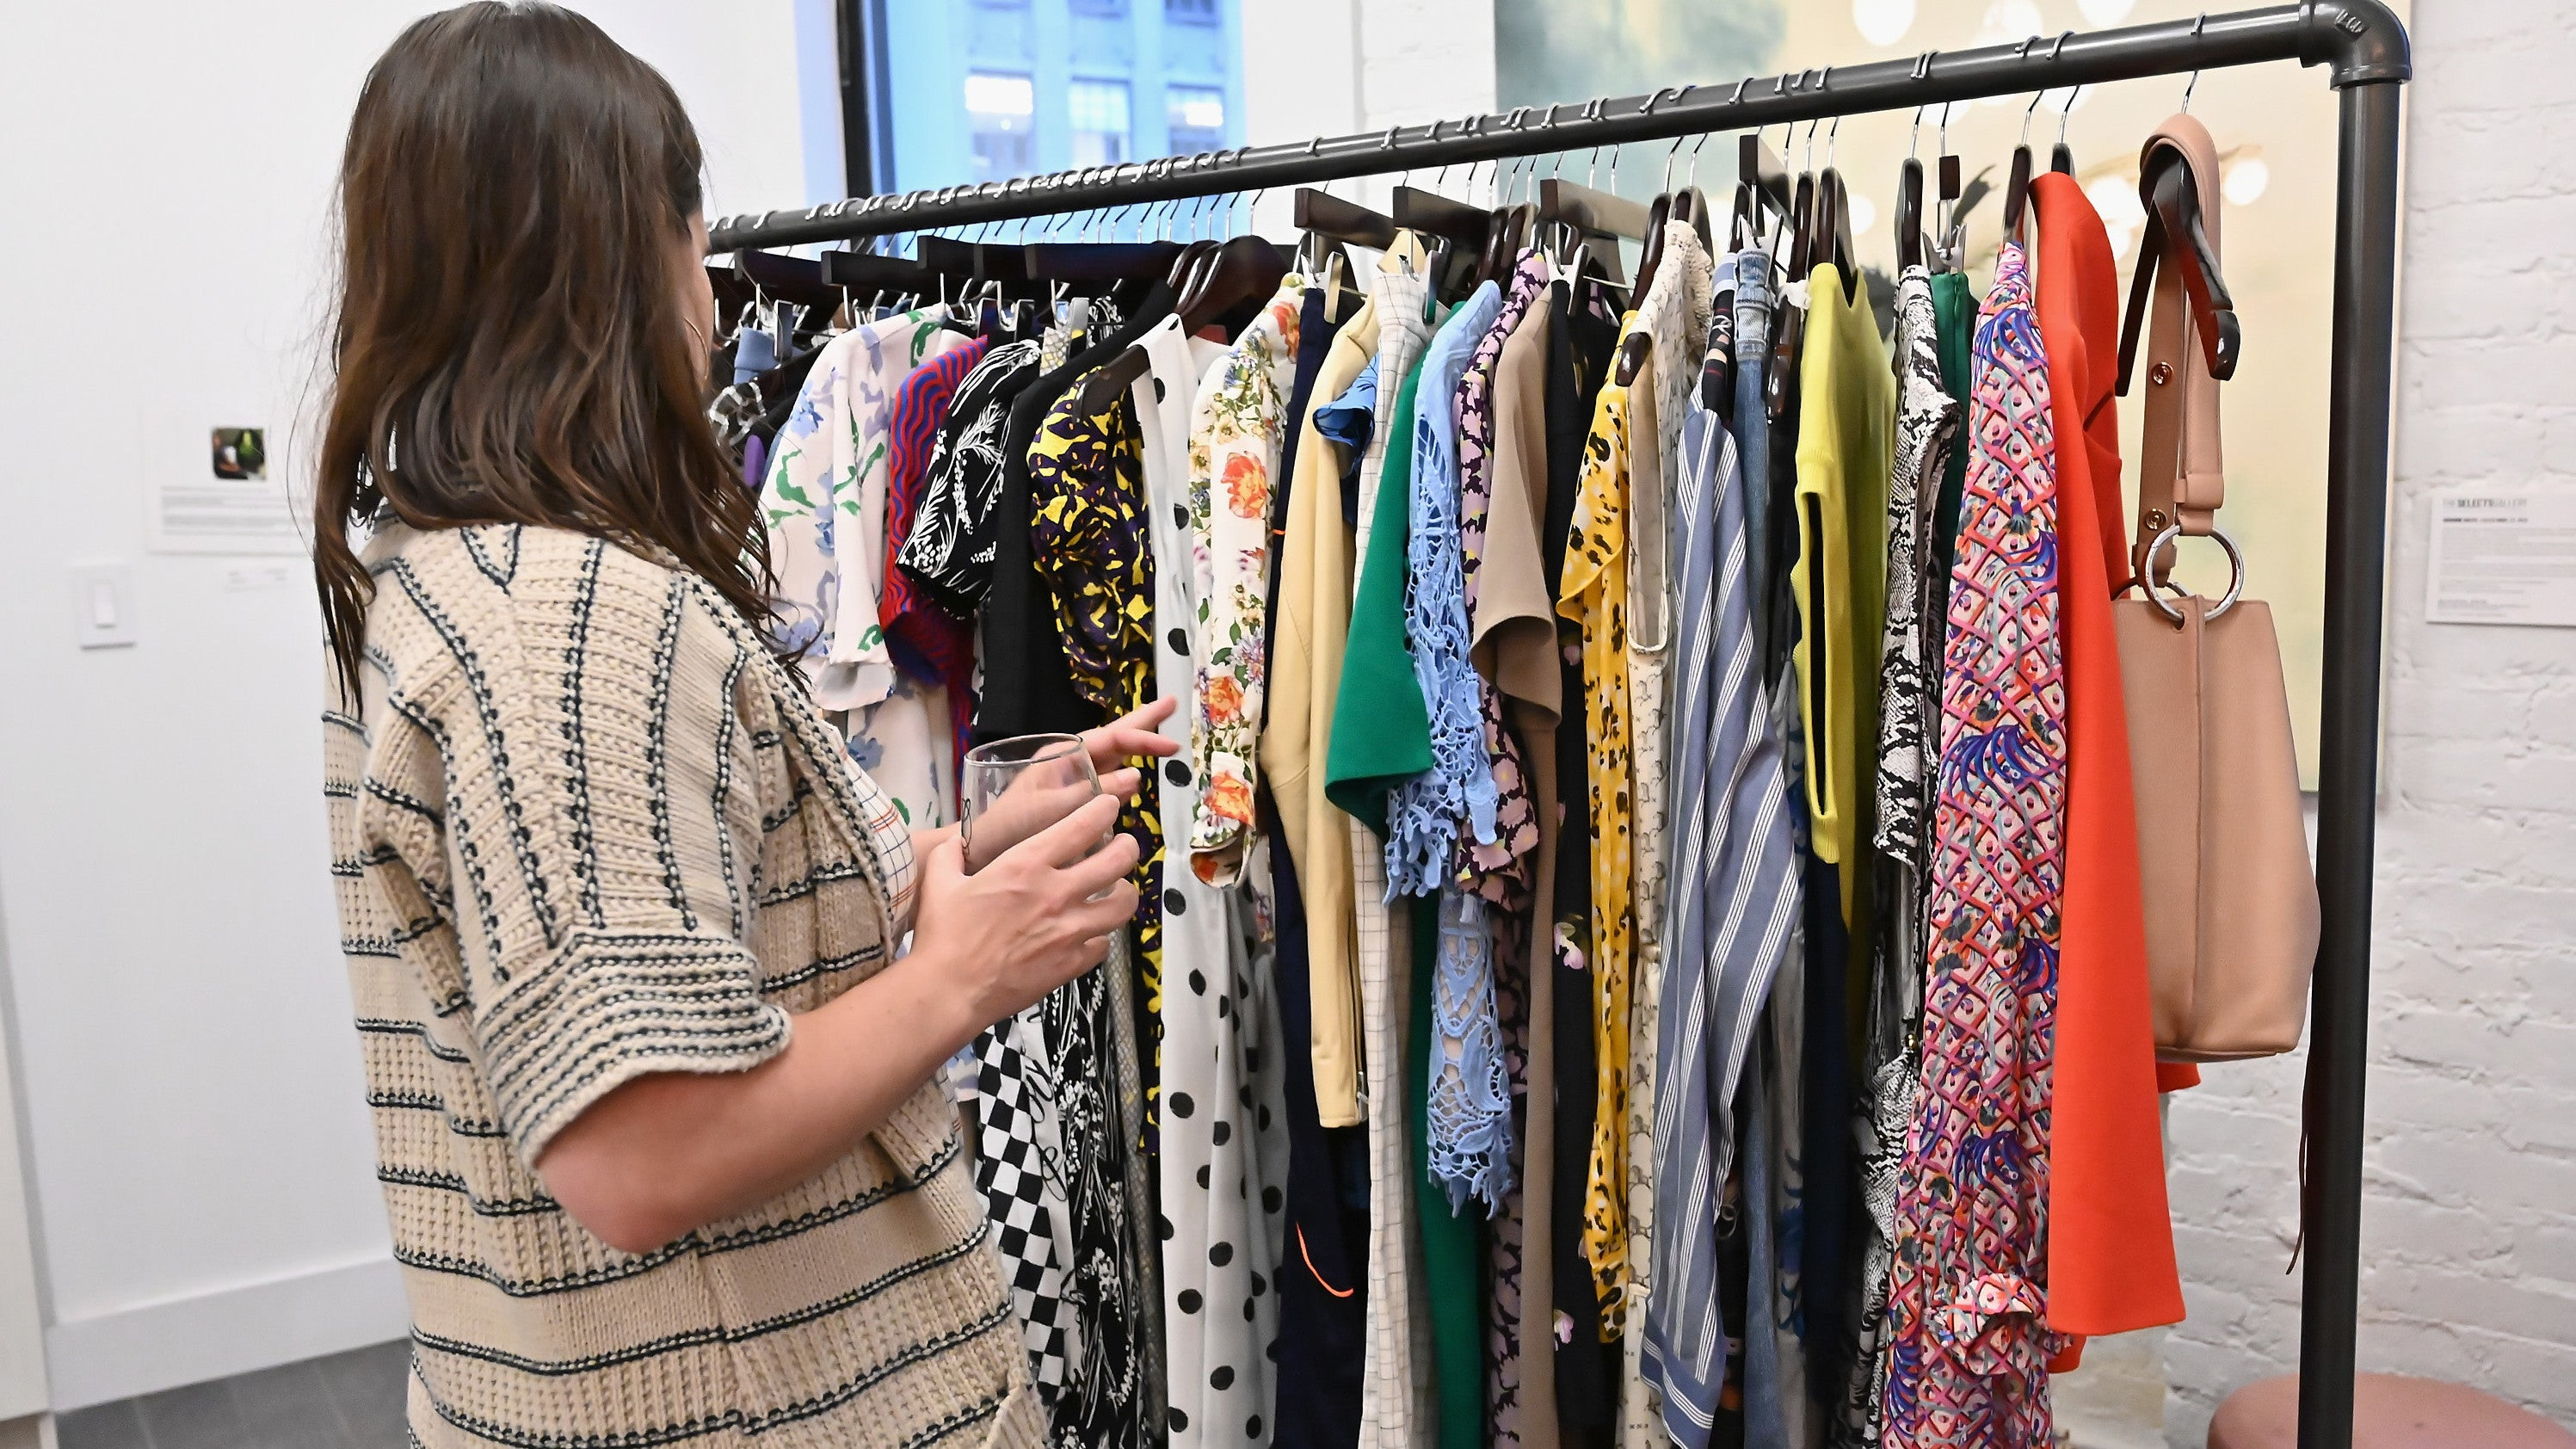 Rent The Runway Reminds Customers That Its Designer Clothes Are Clean And 100 Per Cent Virus-Free